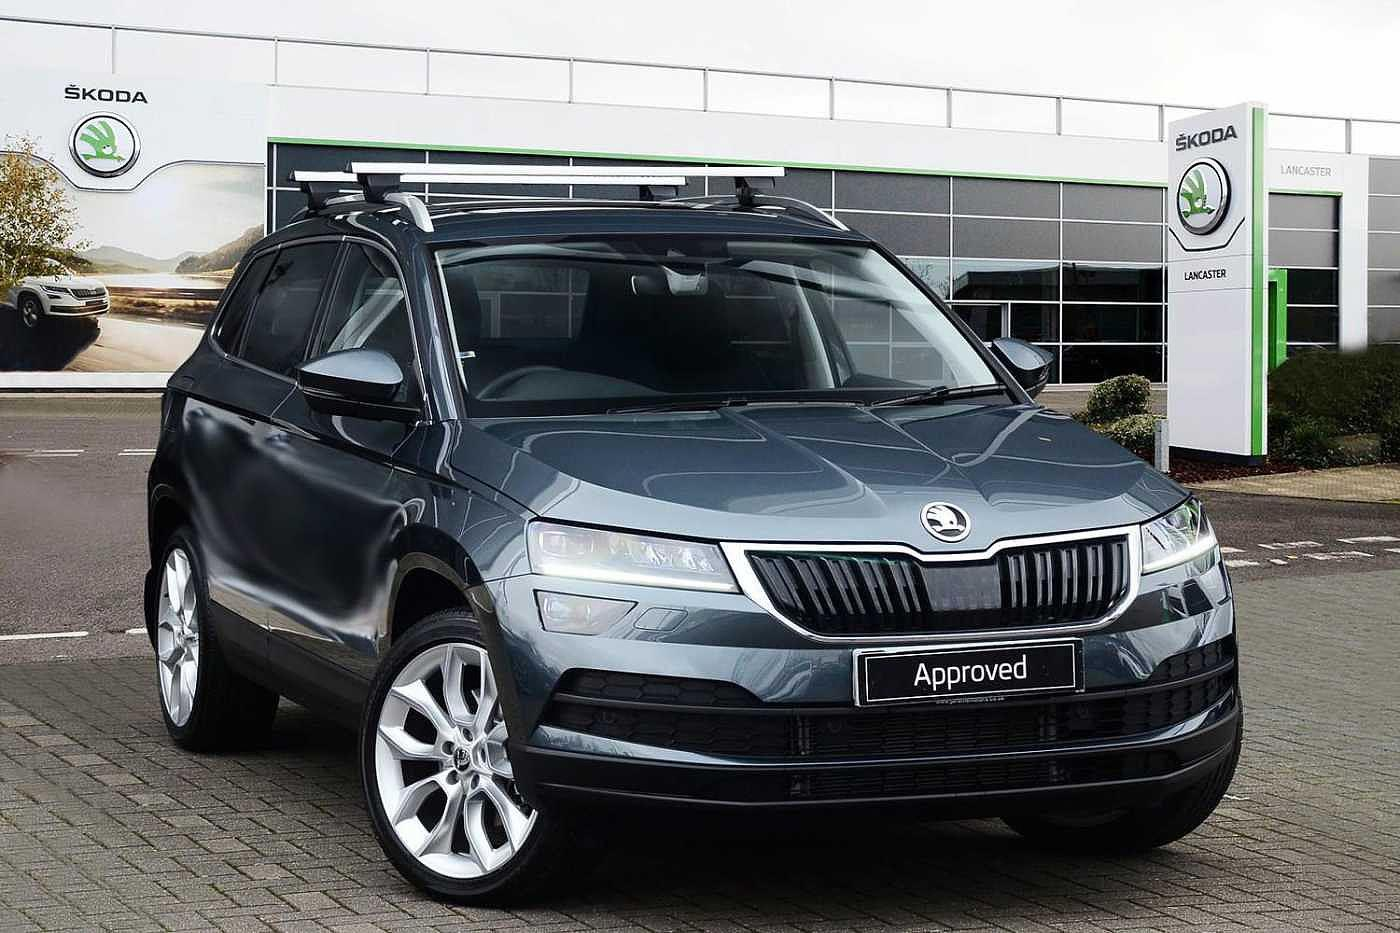 different sun roof skoda karoq briskoda. Black Bedroom Furniture Sets. Home Design Ideas